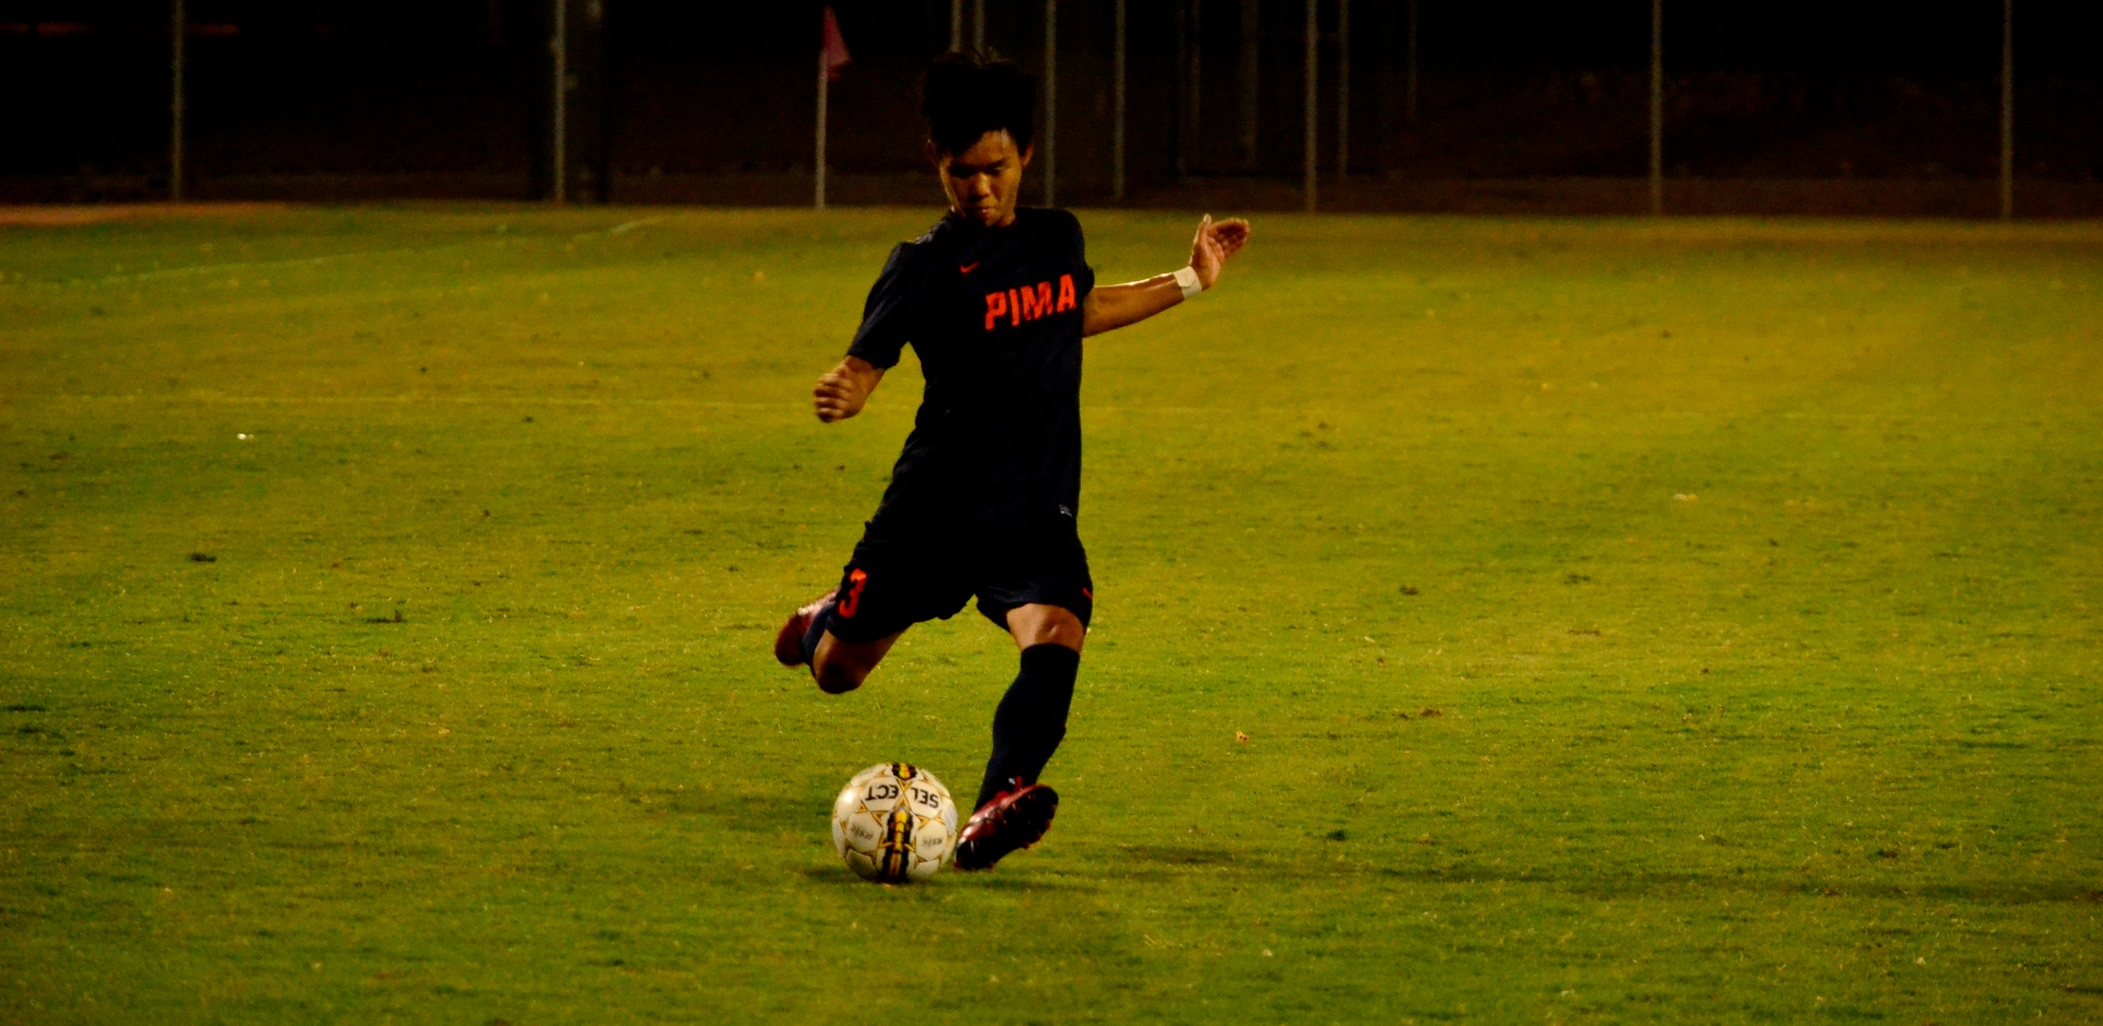 Sophomore Tatsuma Yuki put the Aztecs on the score board in the 25th minute as the Aztecs beat Paradise Valley Community College 2-0. The Aztecs are 8-1-2 overall. Photo by Ben Carbajal